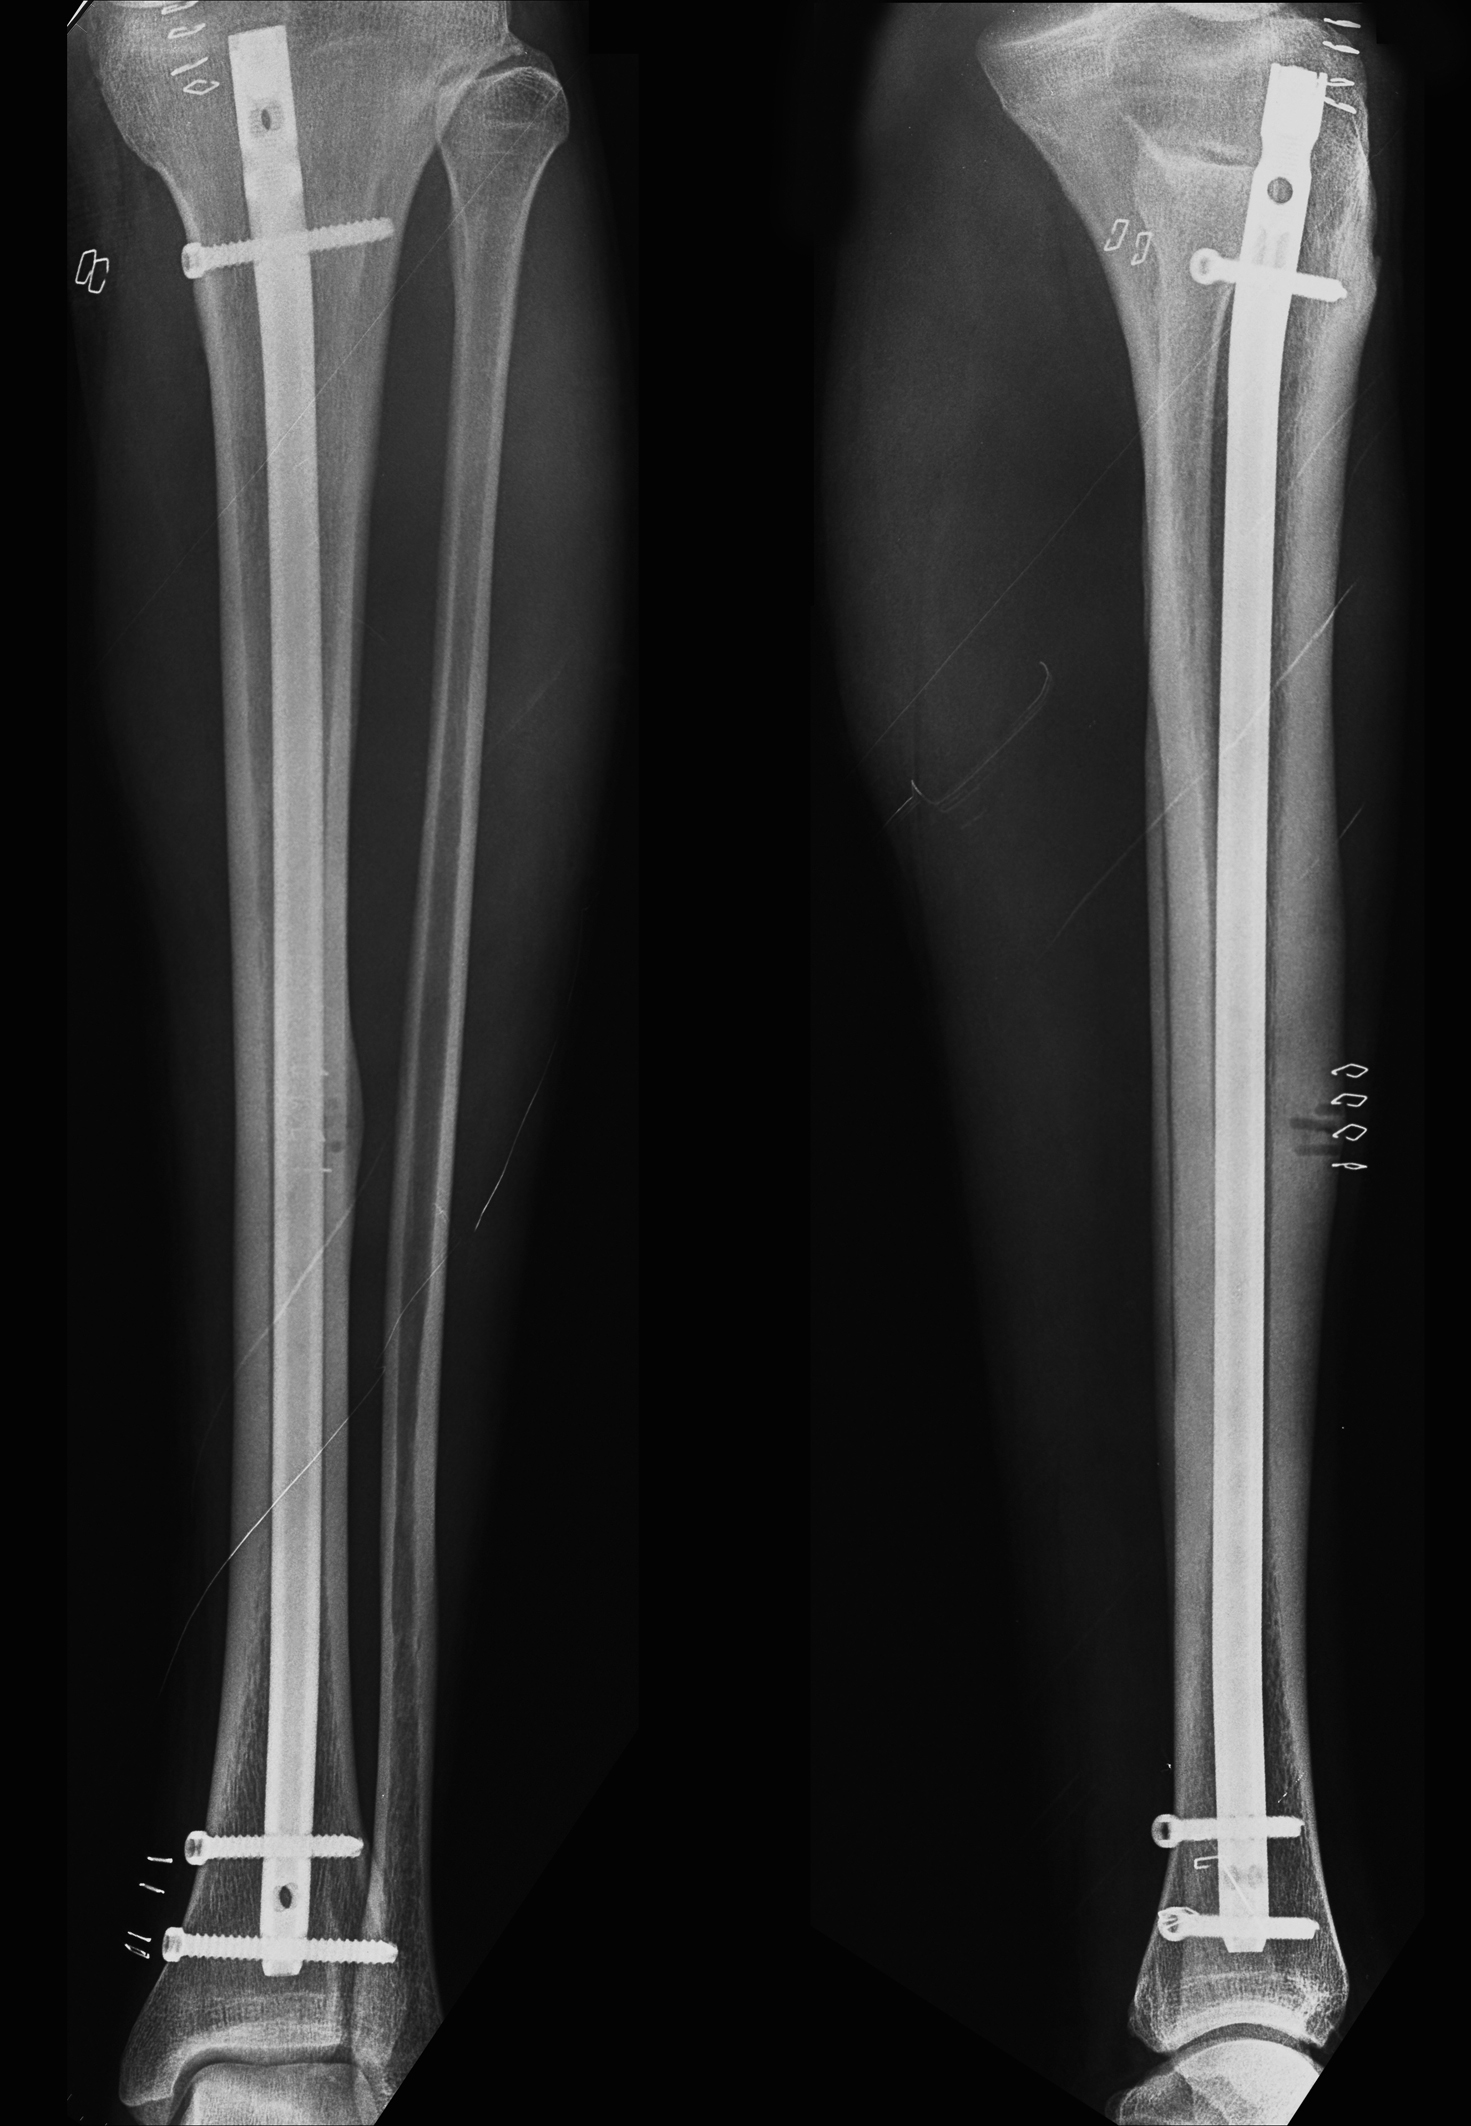 Anterior Tibial Cortex Stress Fracture In A High Demand Professional Soccer Player Gigis Journal Of Medical Cases